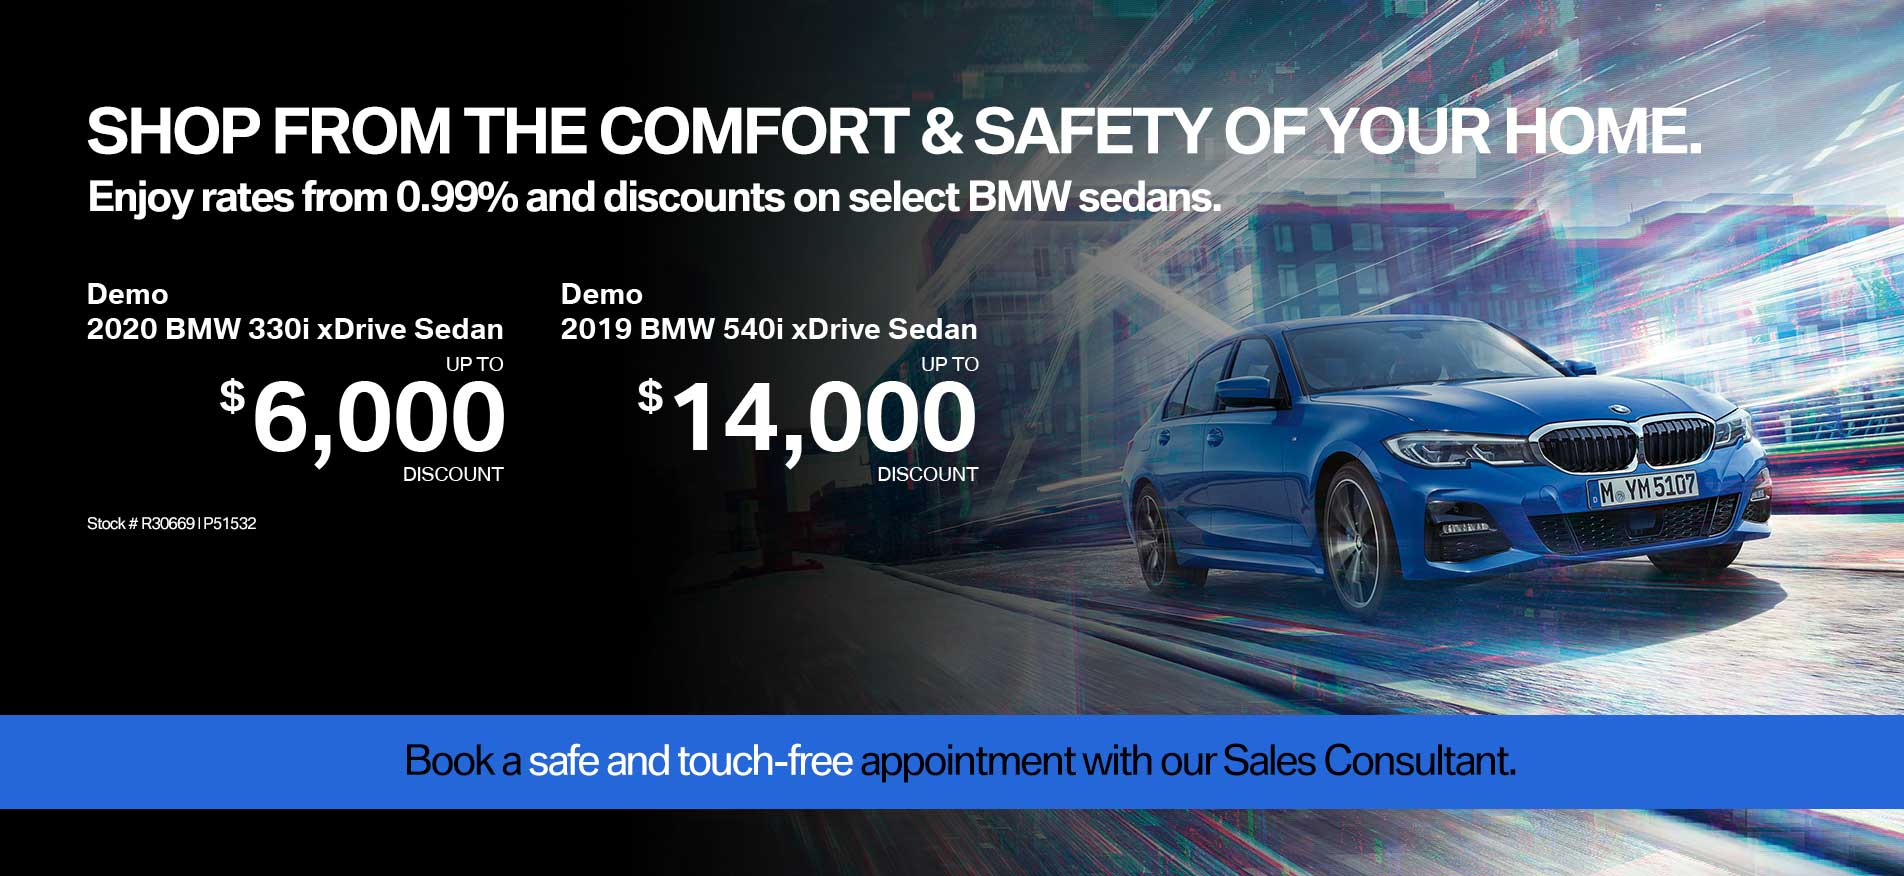 Auto West BMW Sedan Demo Sale April 2020